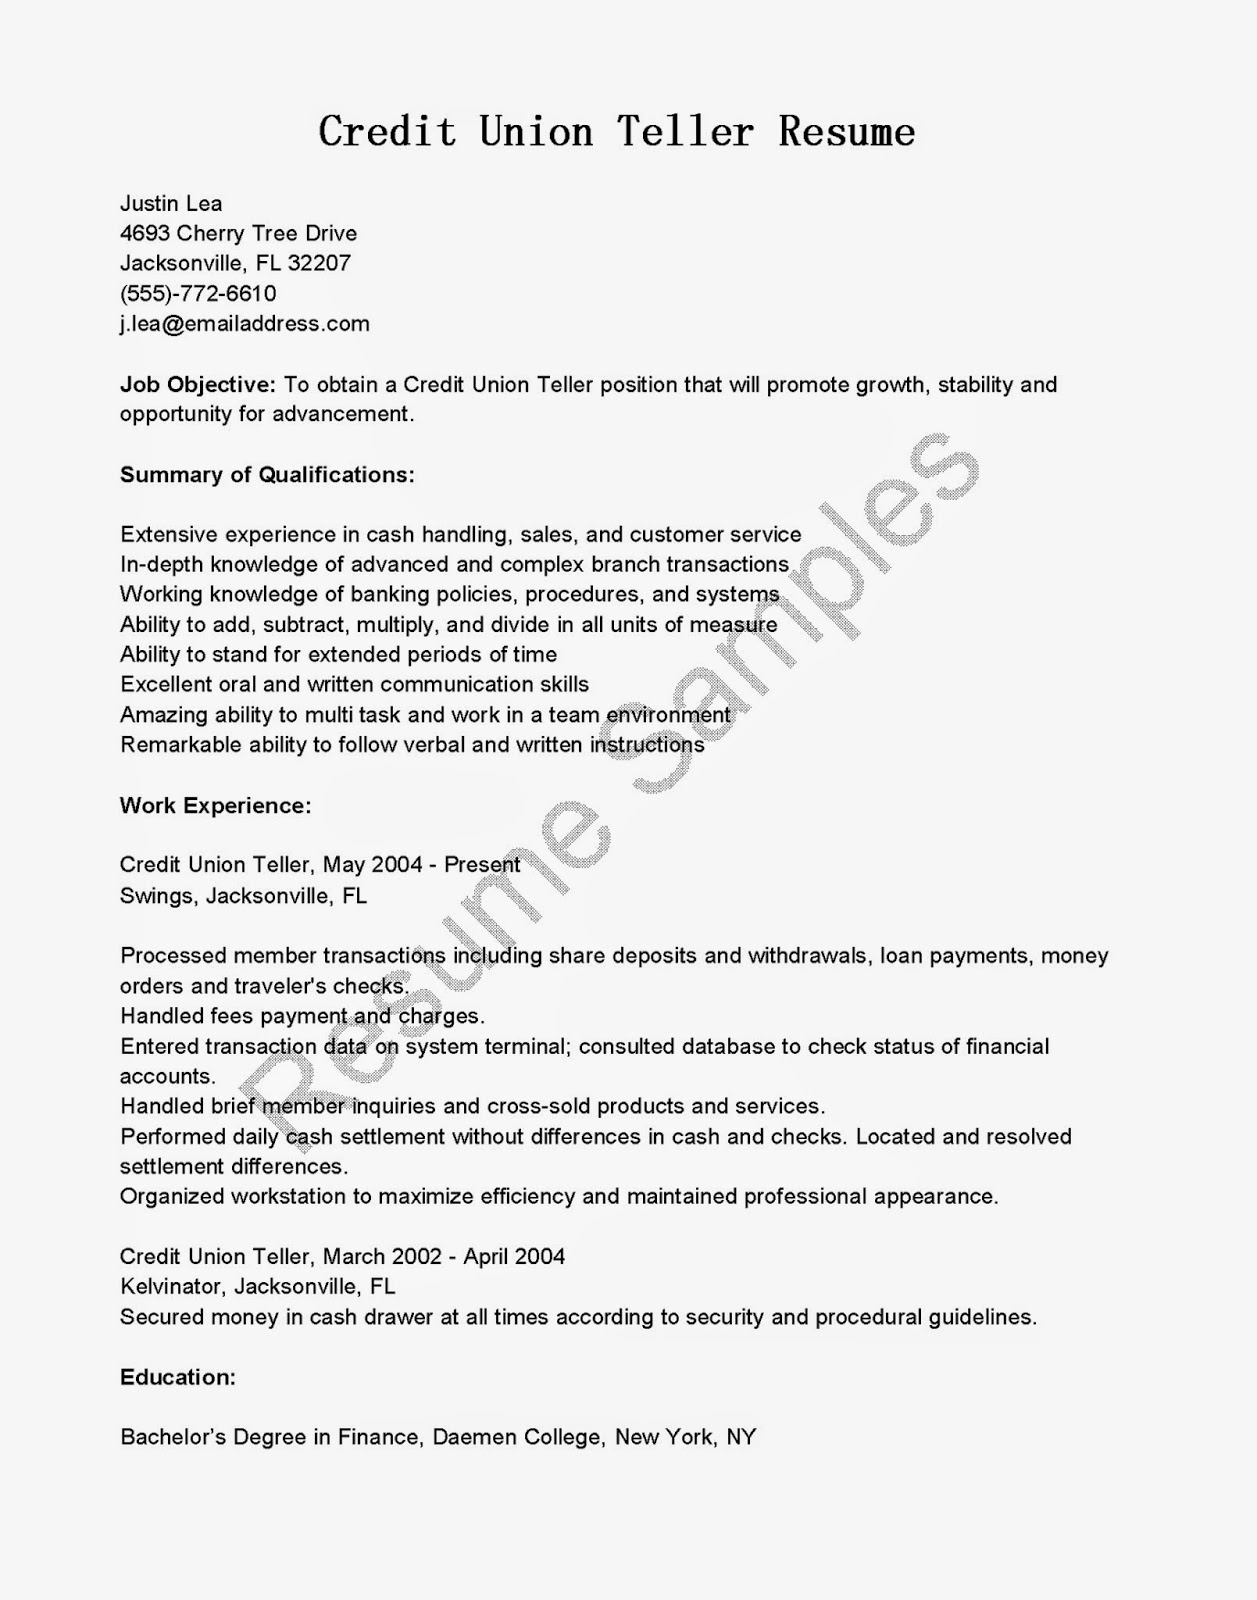 resume samples  credit union teller resume sample